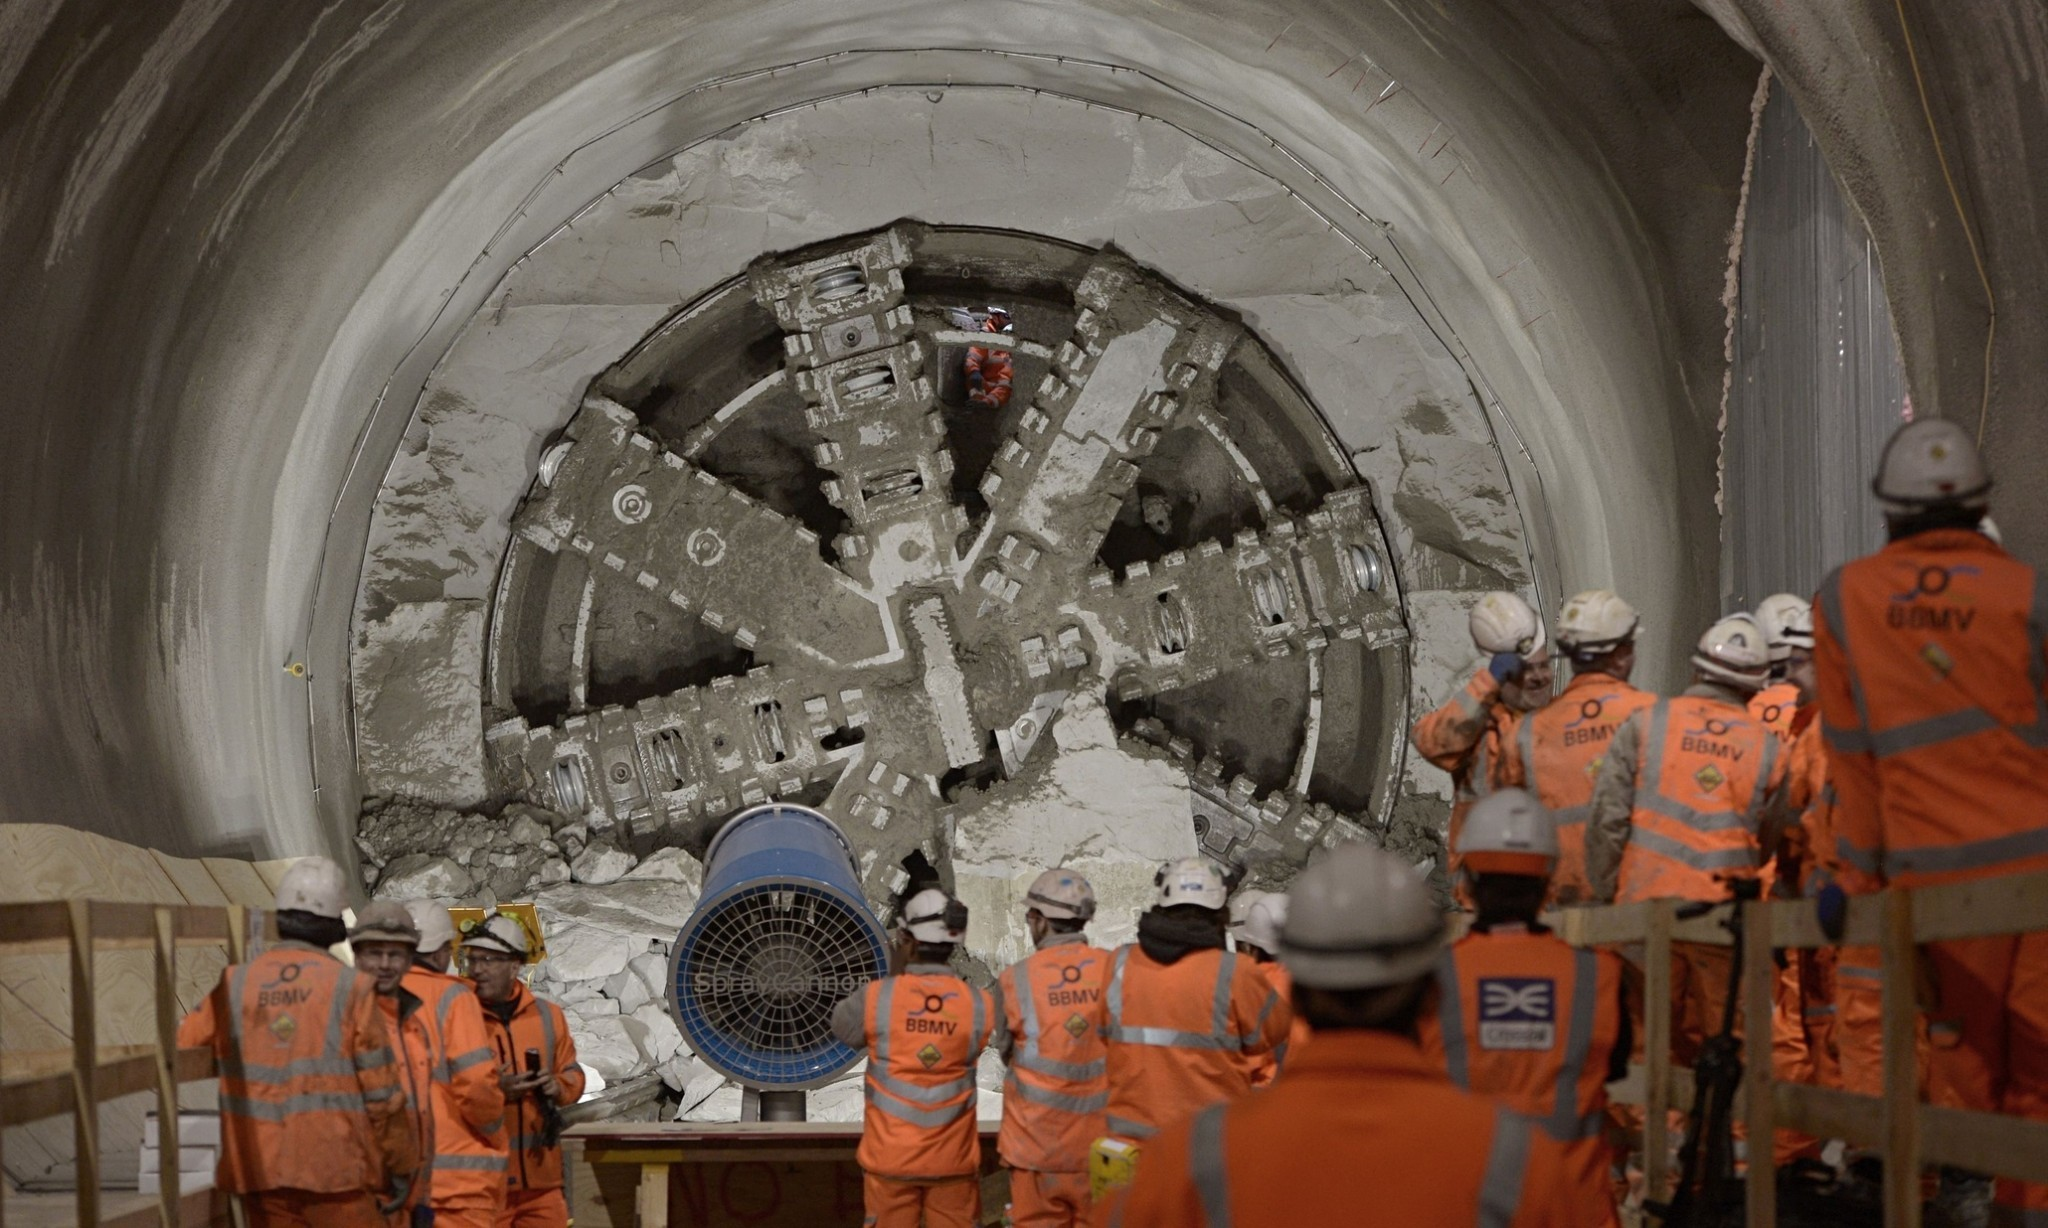 Tunnel vision: London's Crossrail enters its final leg